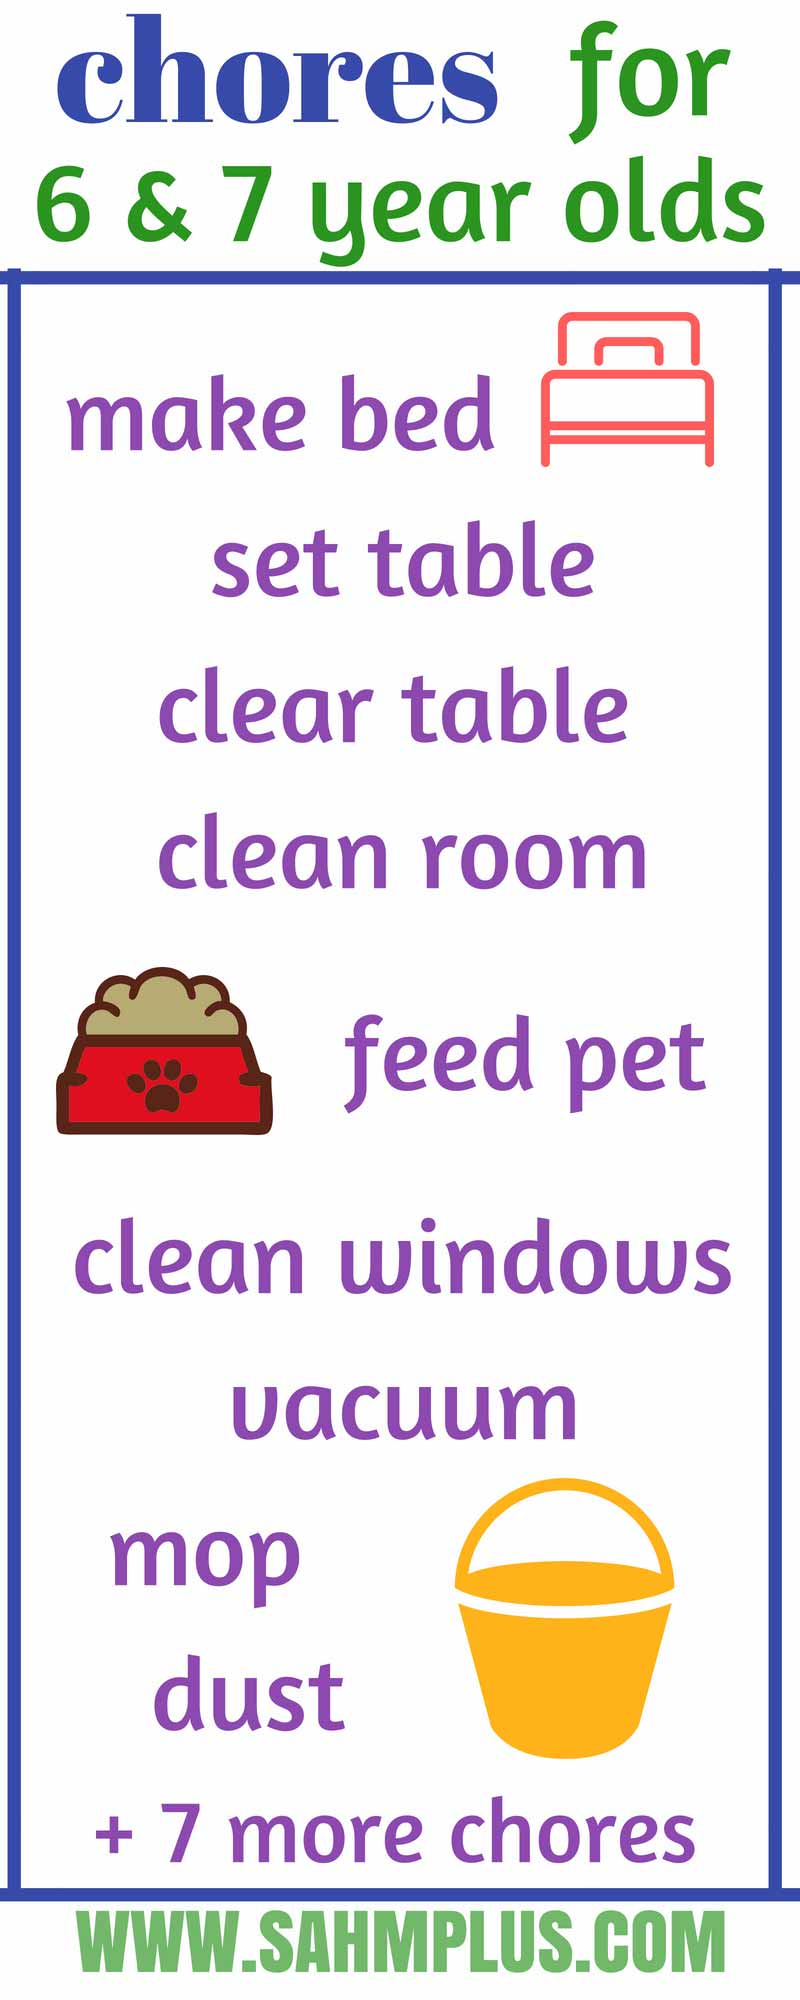 List of age-appropriate chores for 6 and 7 year olds. Teaching kids responsibility through chores   sahmplus.com